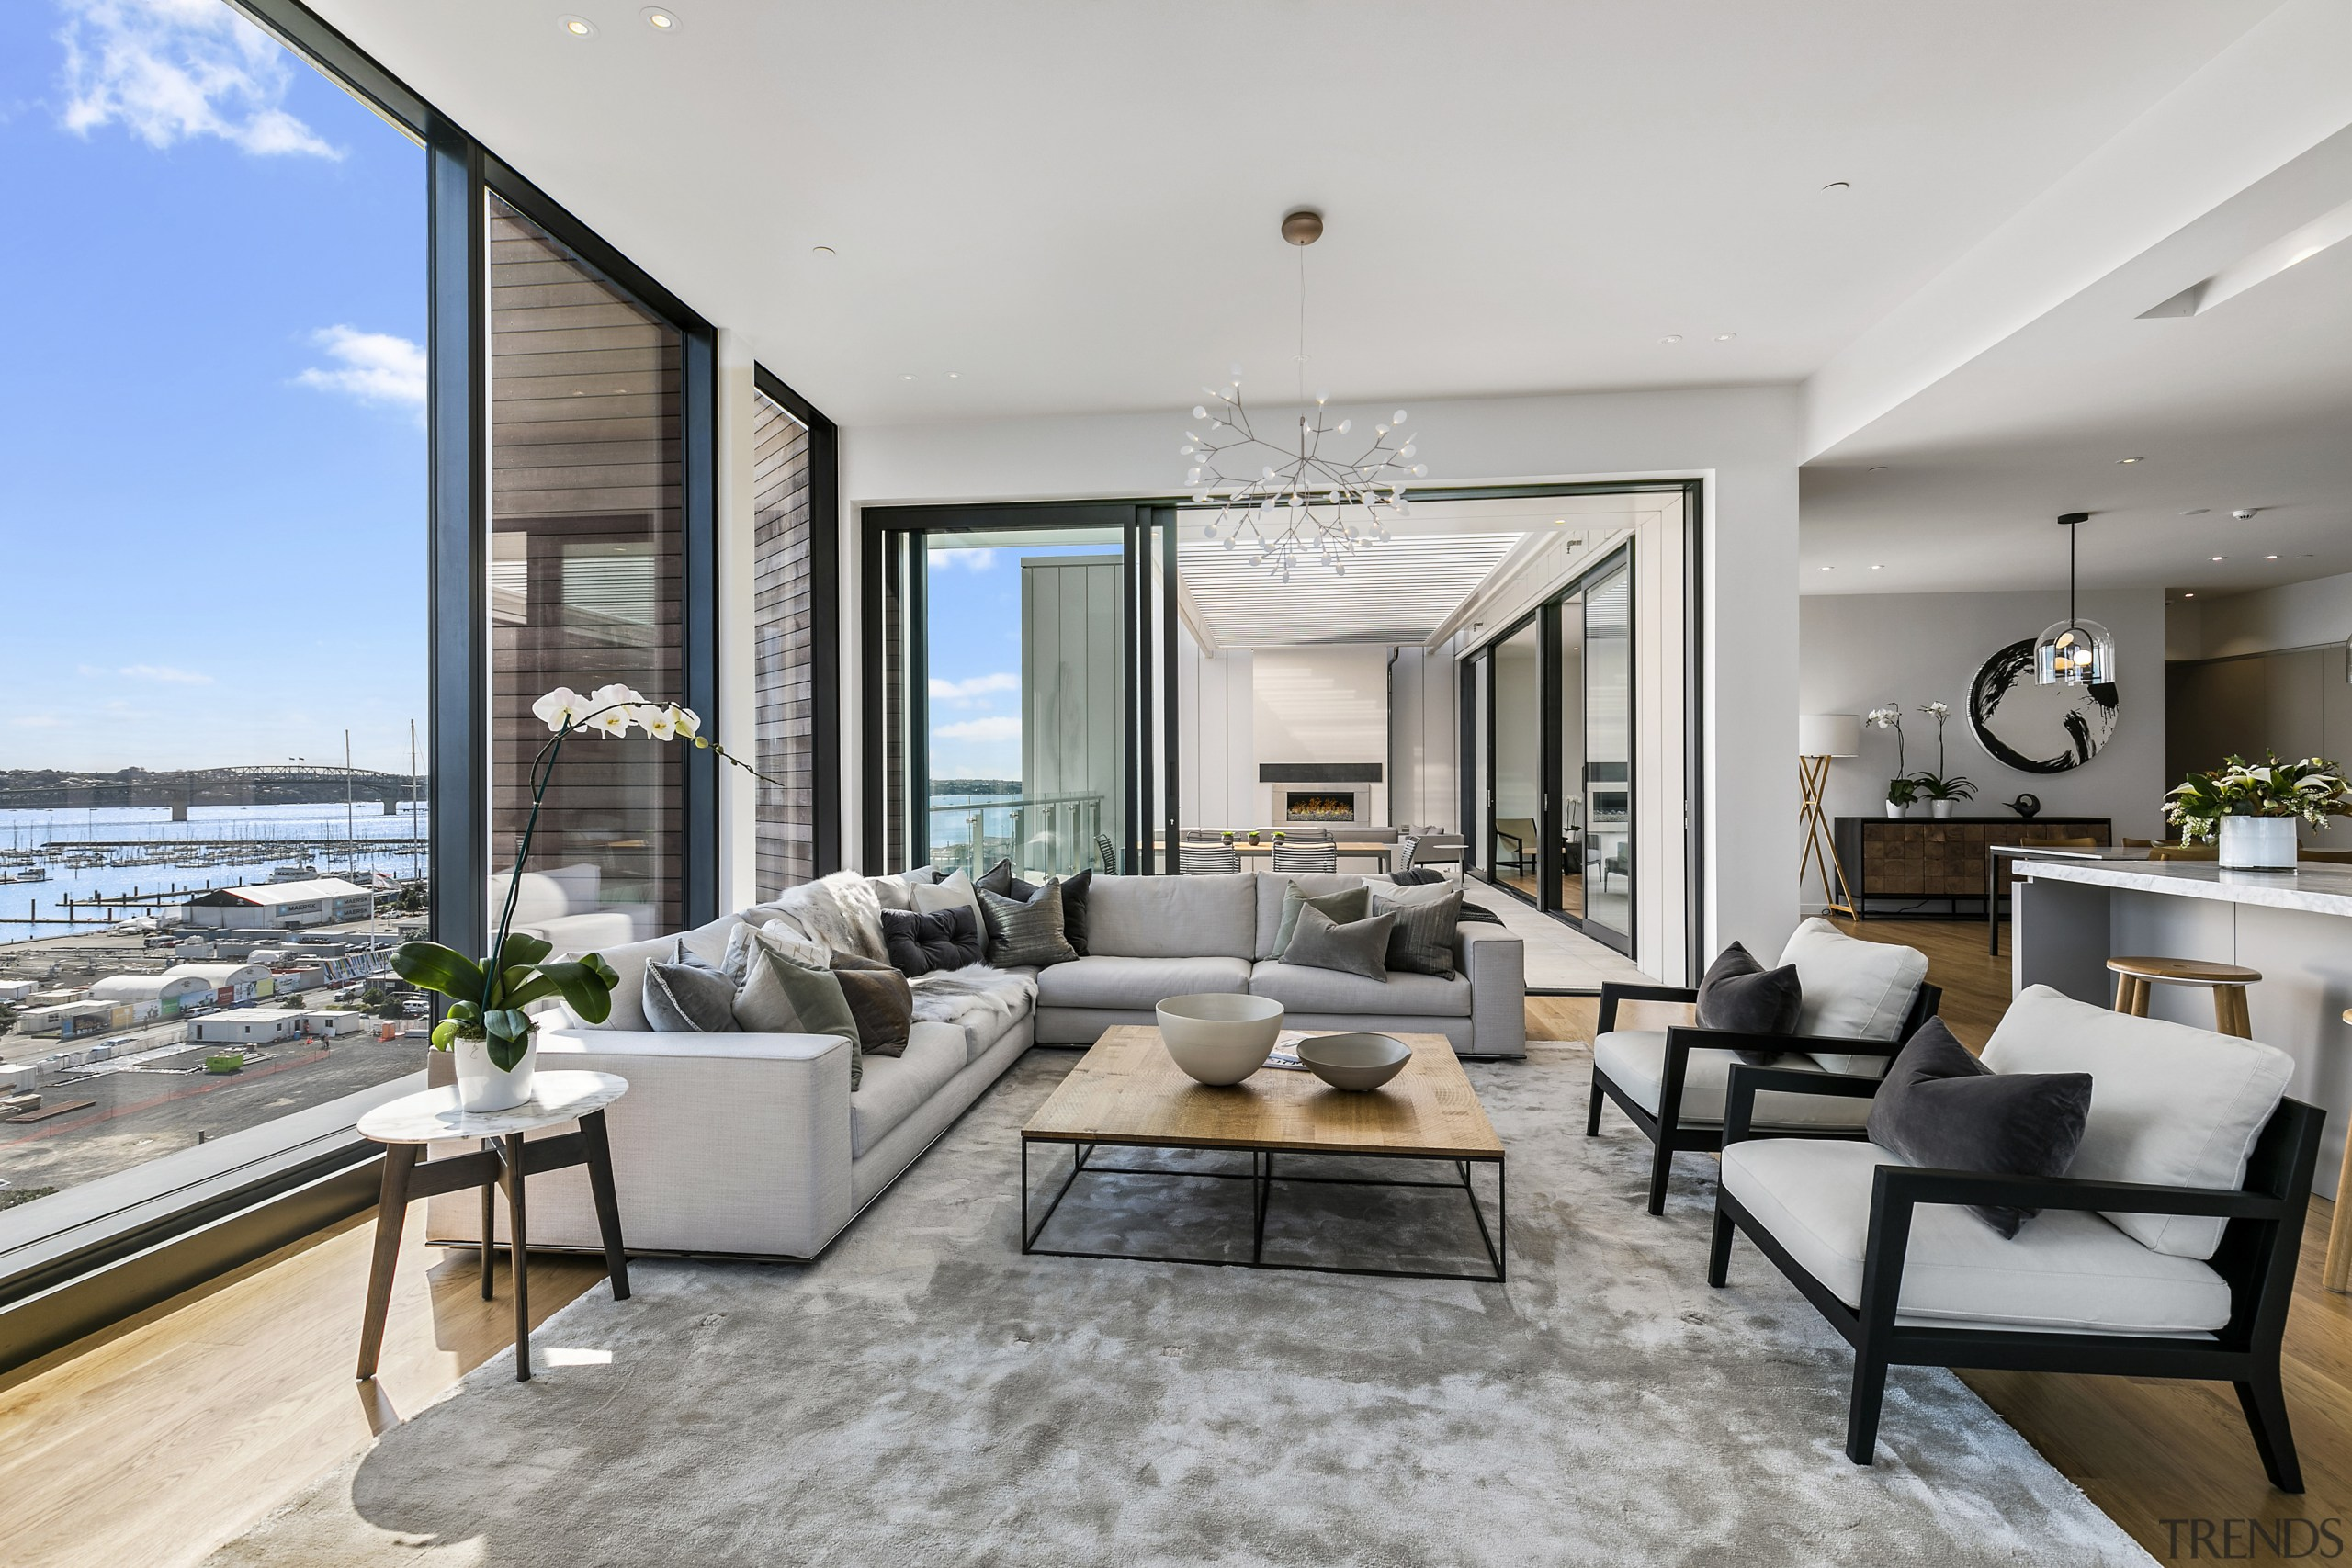 The Apartments residences at Wynyard Central are light-filled apartment, architecture, building, ceiling, coffee table, design, estate, floor, flooring, furniture, home, house, interior design, living room, penthouse apartment, property, real estate, room, table, gray